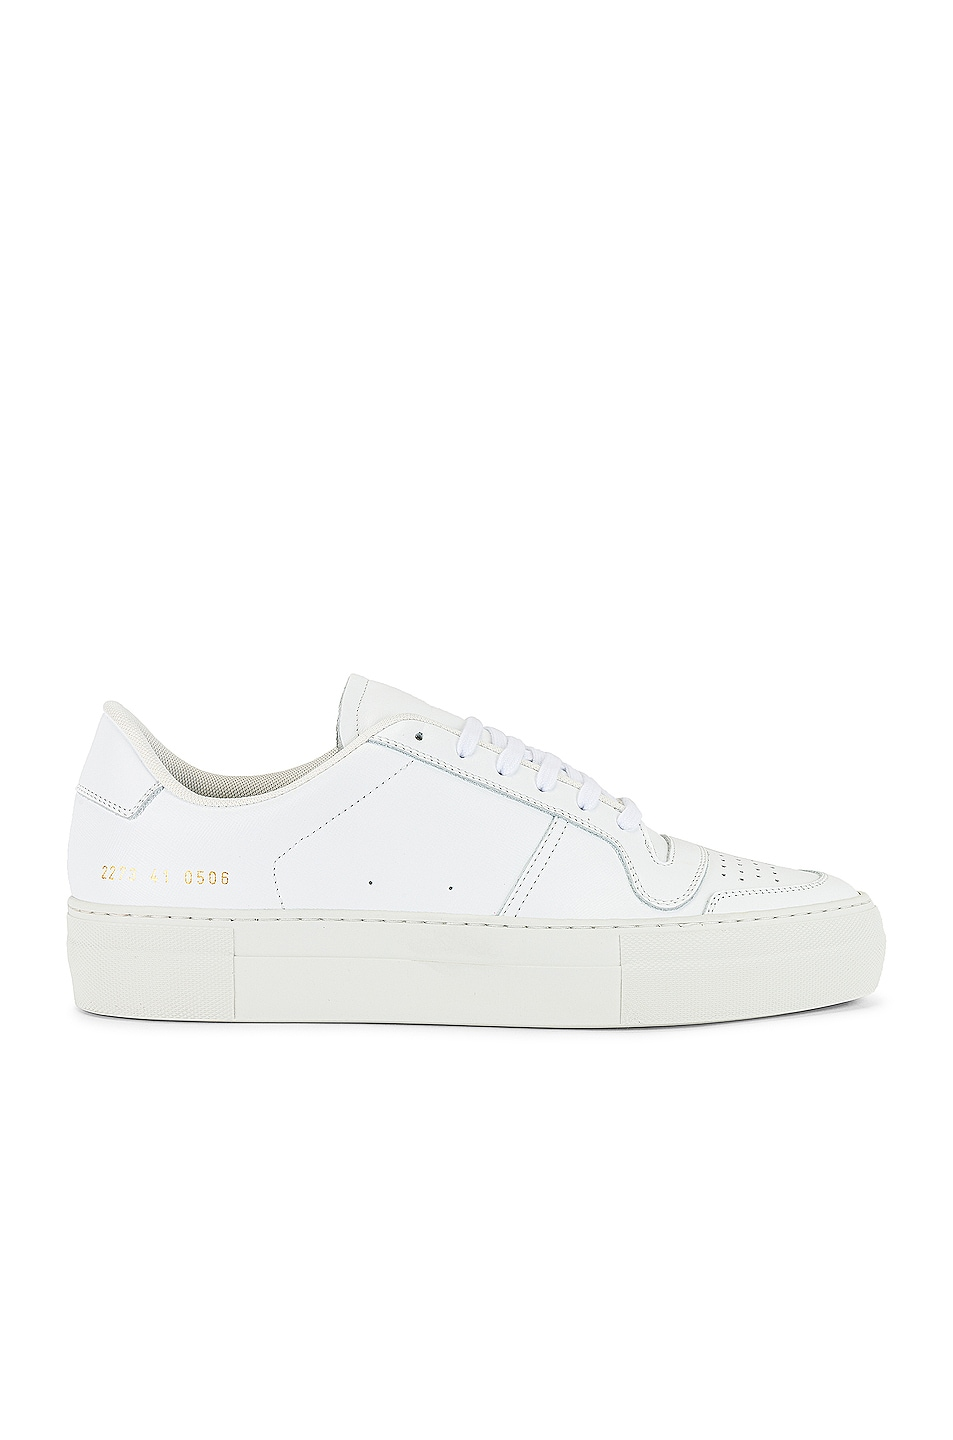 Image 1 of Common Projects Full Court Saffiano Low Top Sneaker in White